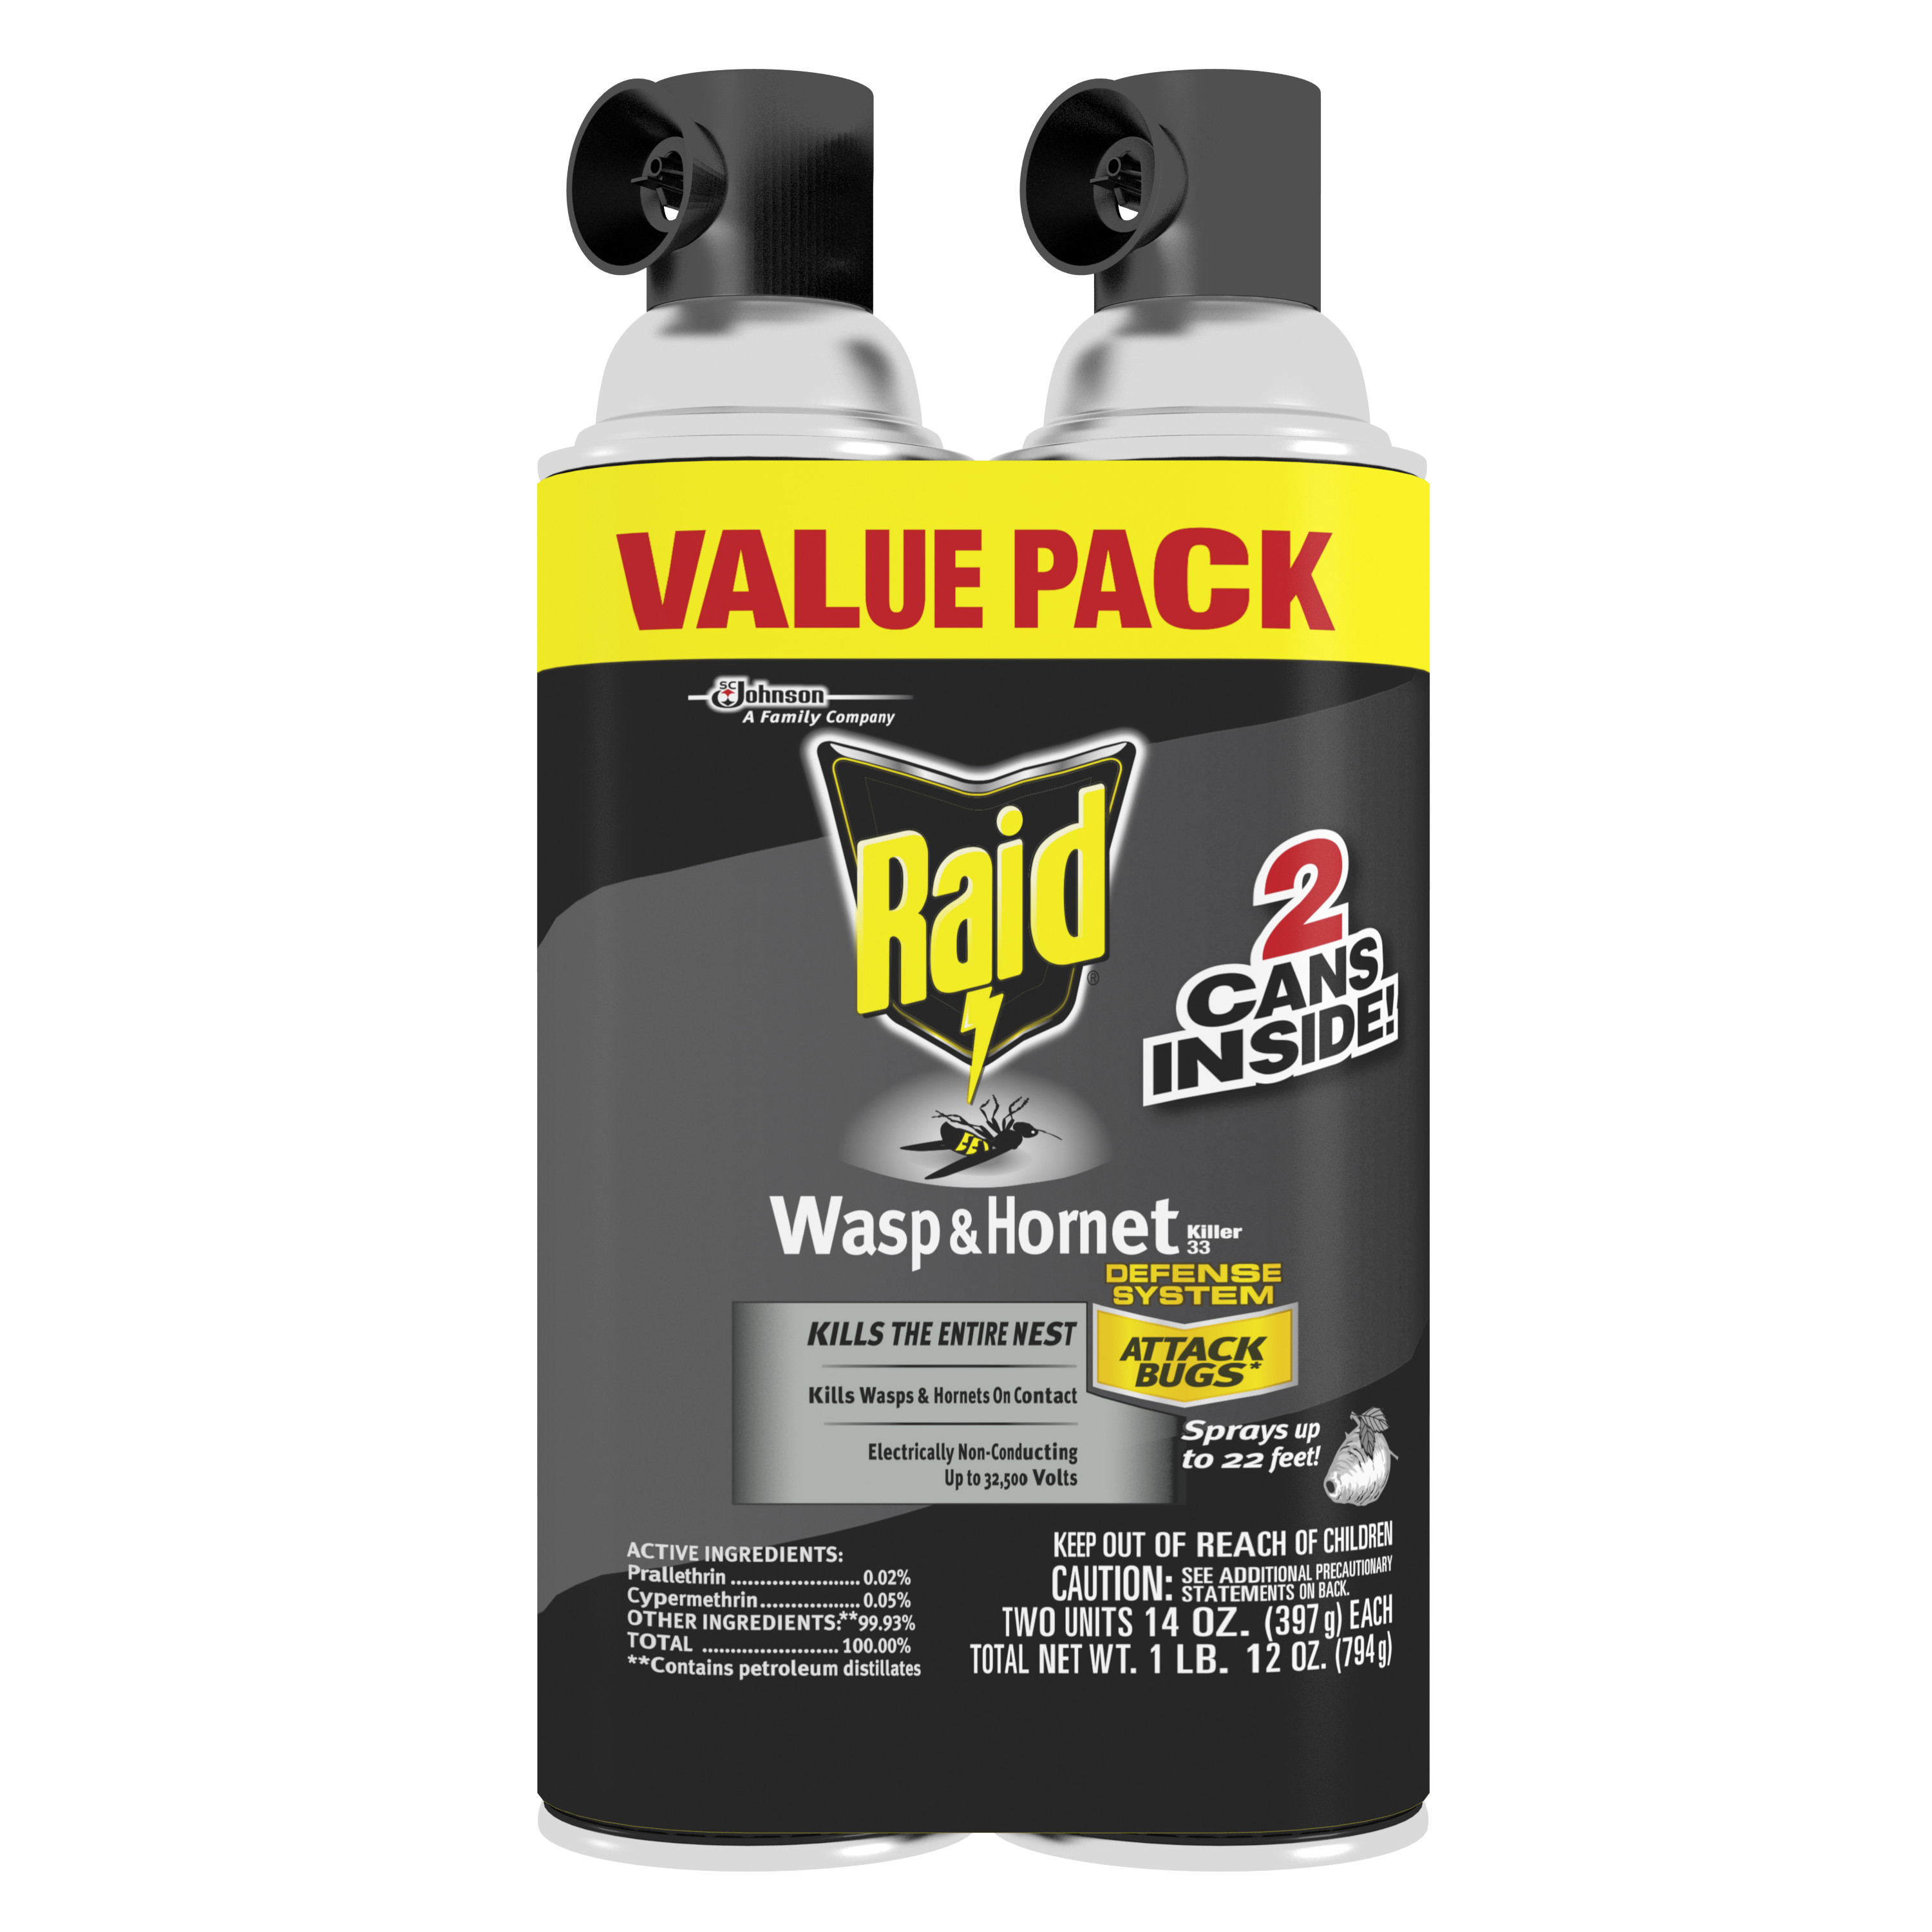 Raid Wasp & Hornet Killer Spray, 14 oz, 2 pk